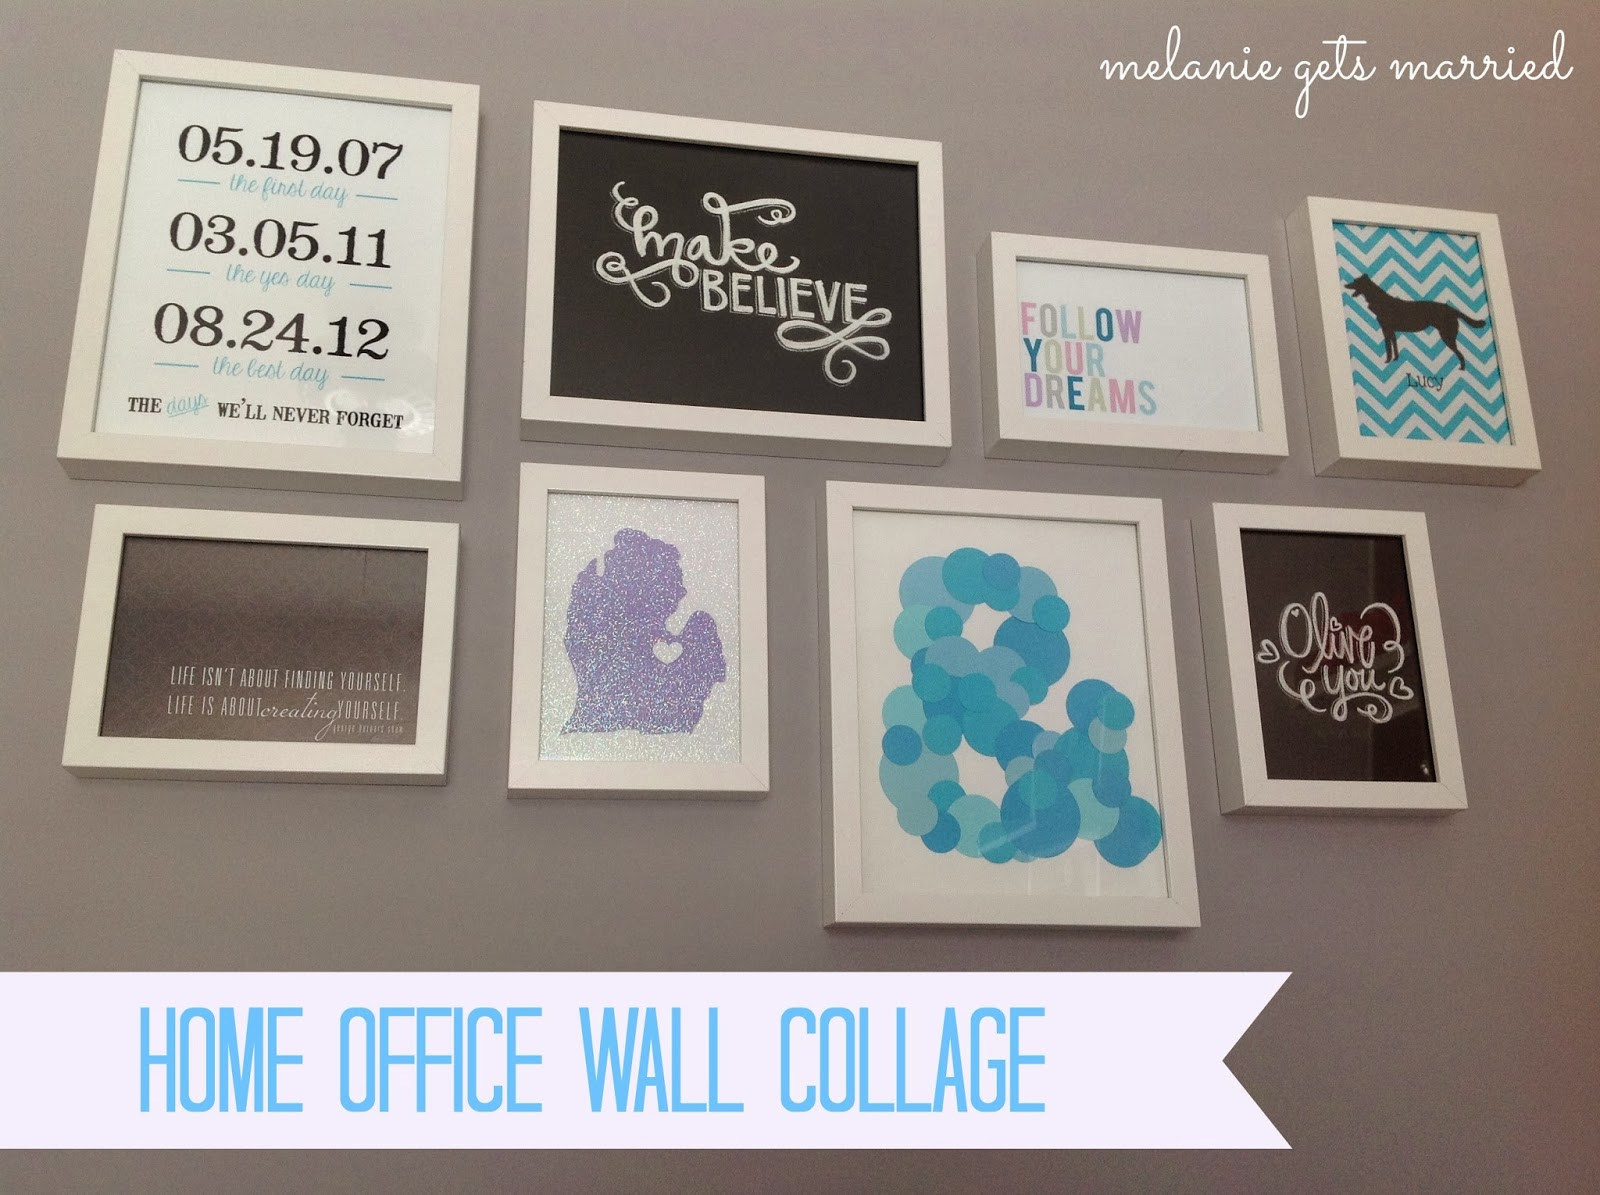 Home Office Wall Collage